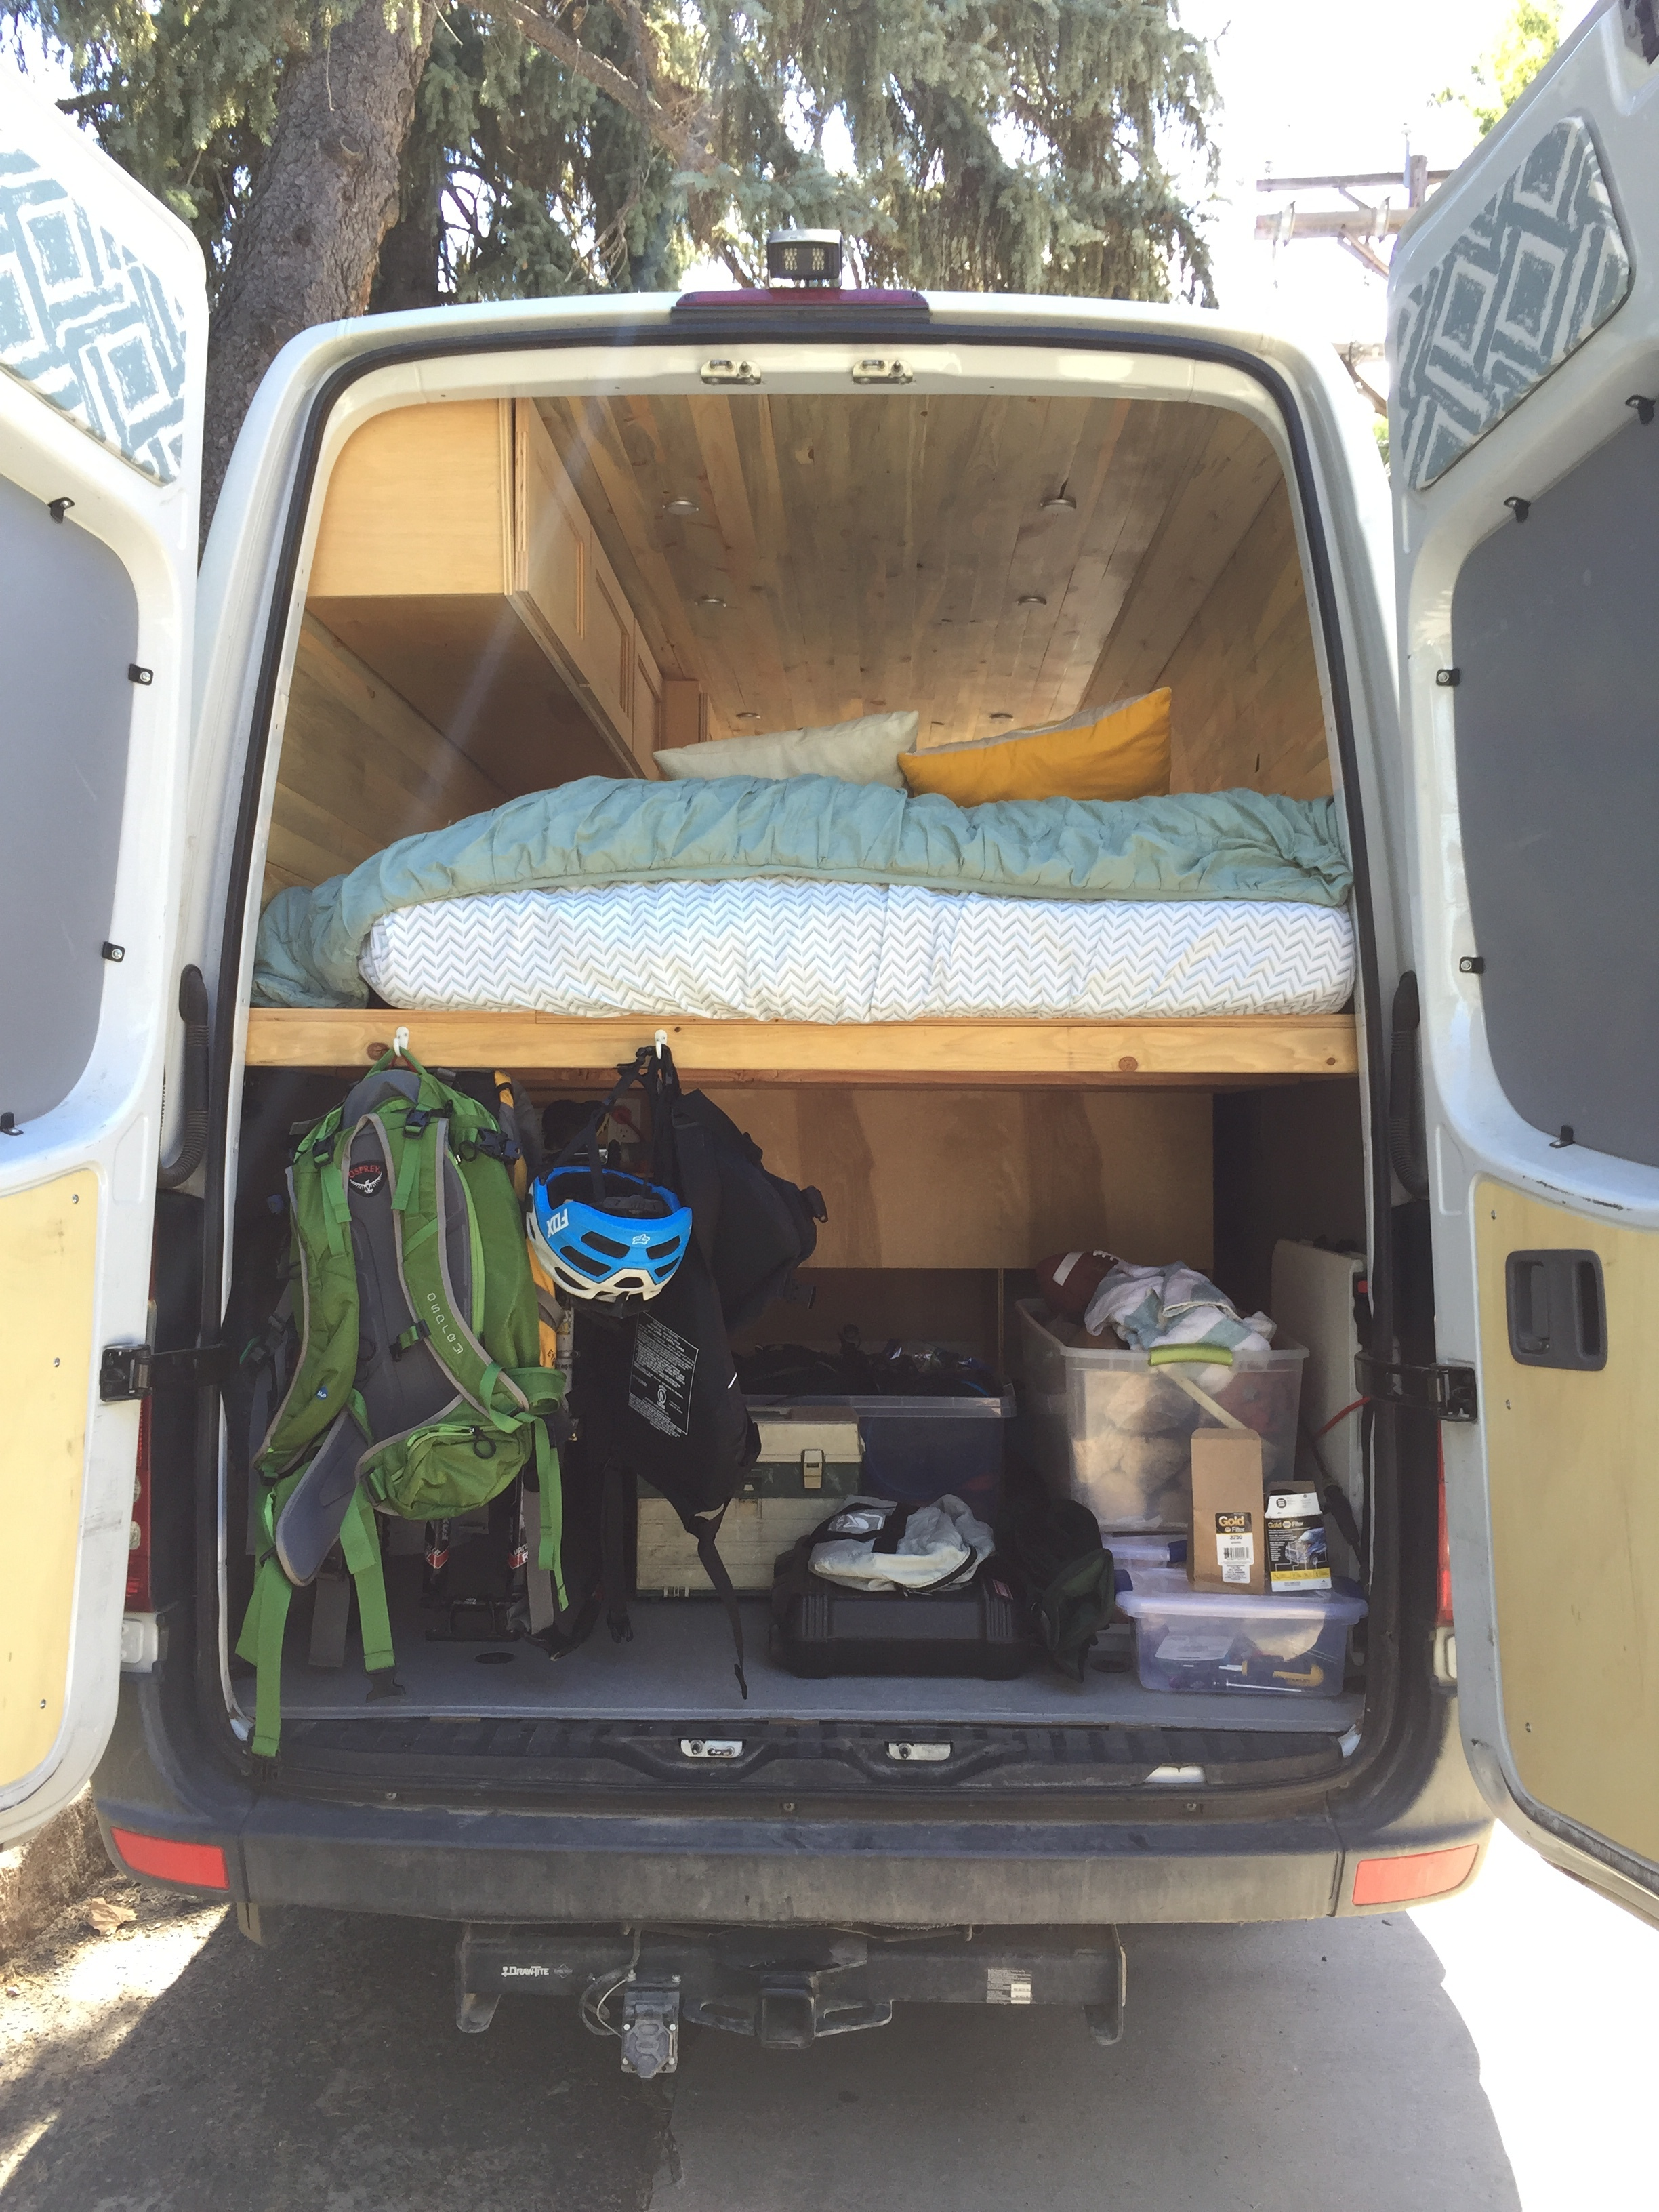 Underneath the large bed you'll find a full AM solar control center, battery storage, and a plethora of space for all of your adventure gear.